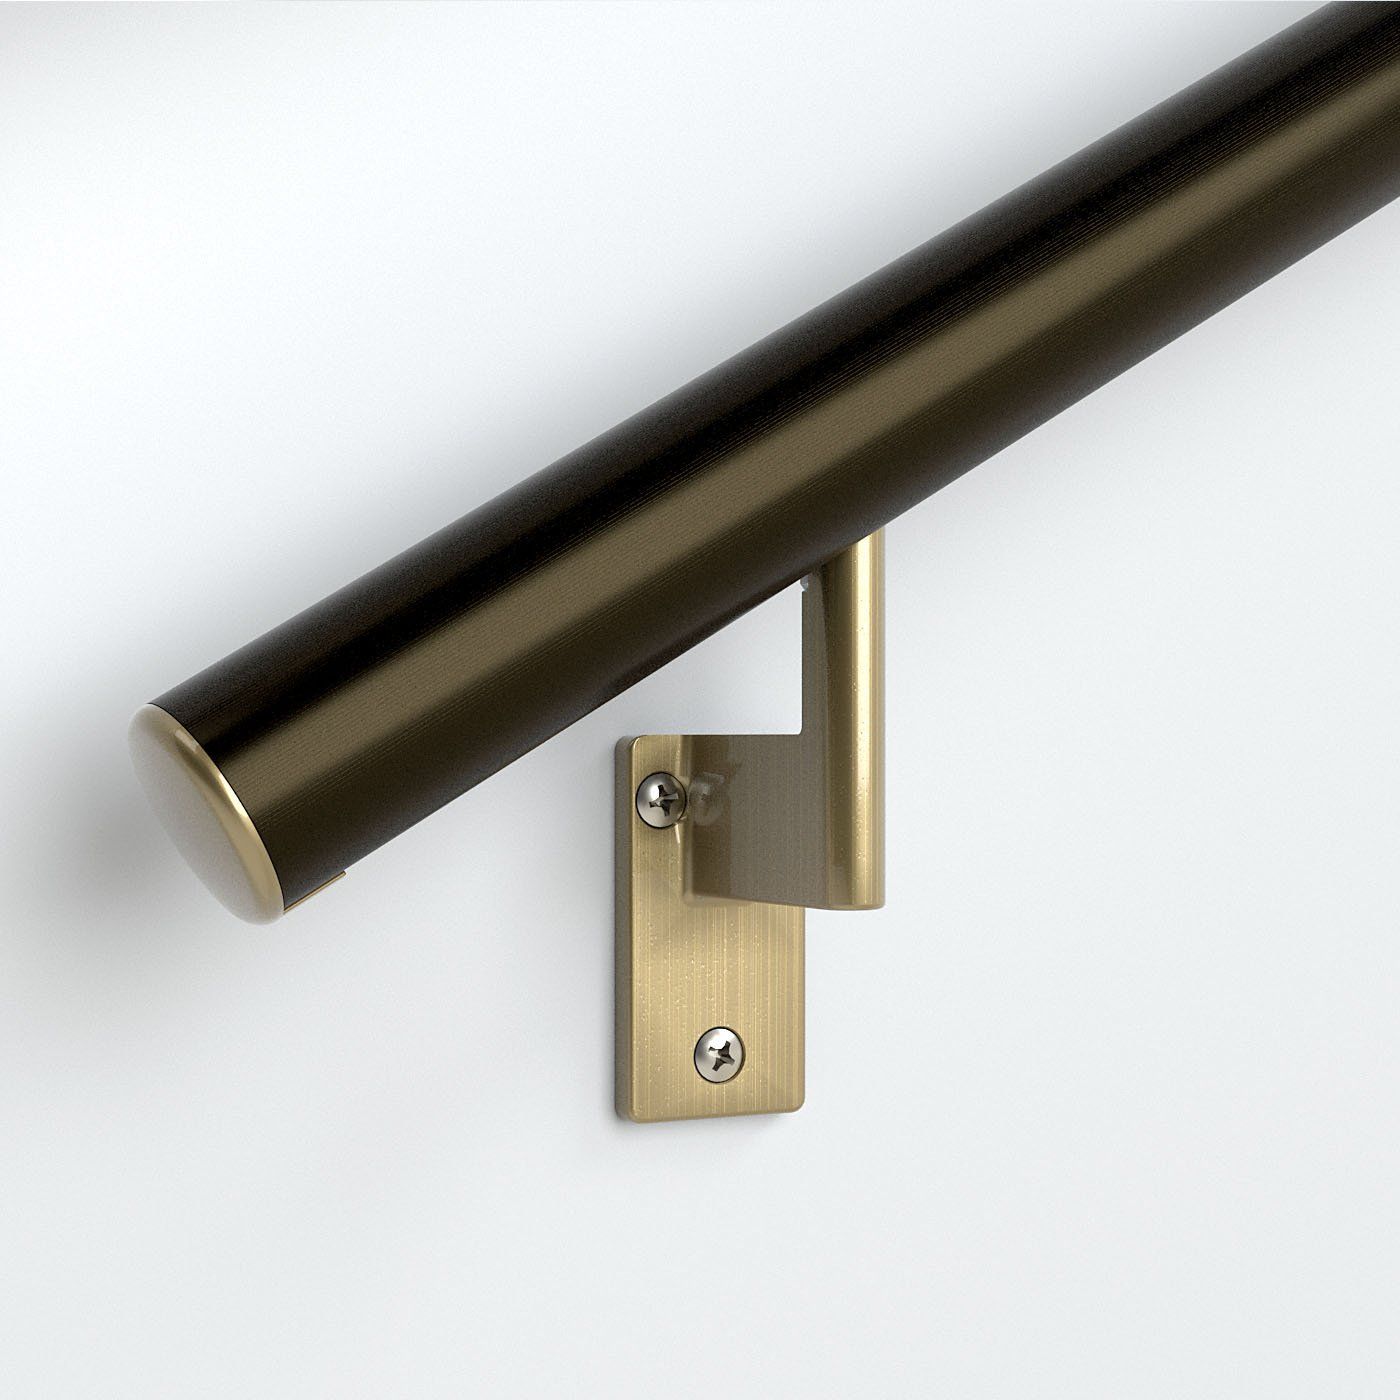 4ft. Handrail - Architectural Bronze Anodized Aluminum with 3 Antique Brass Wall Brackets and Endcaps - 1.6'' Round - Complete Kit